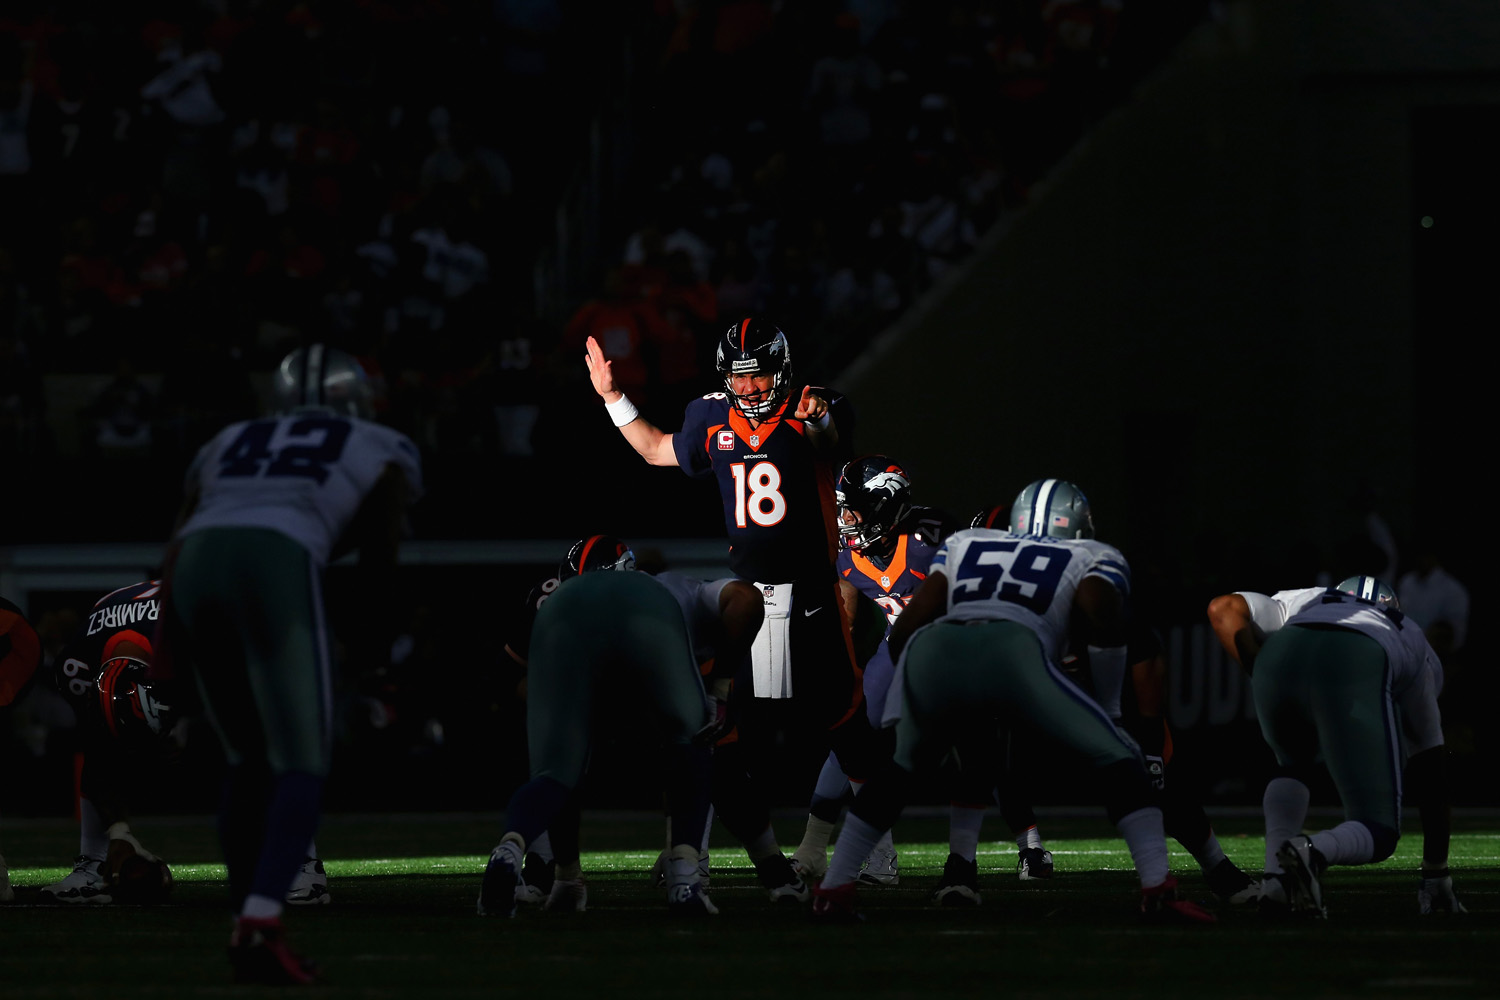 Oct. 6, 2013. Peyton Manning of the Denver Broncos calls a play against the Dallas Cowboys in the fourth quarter at AT&T Stadium in Arlington, Texas.